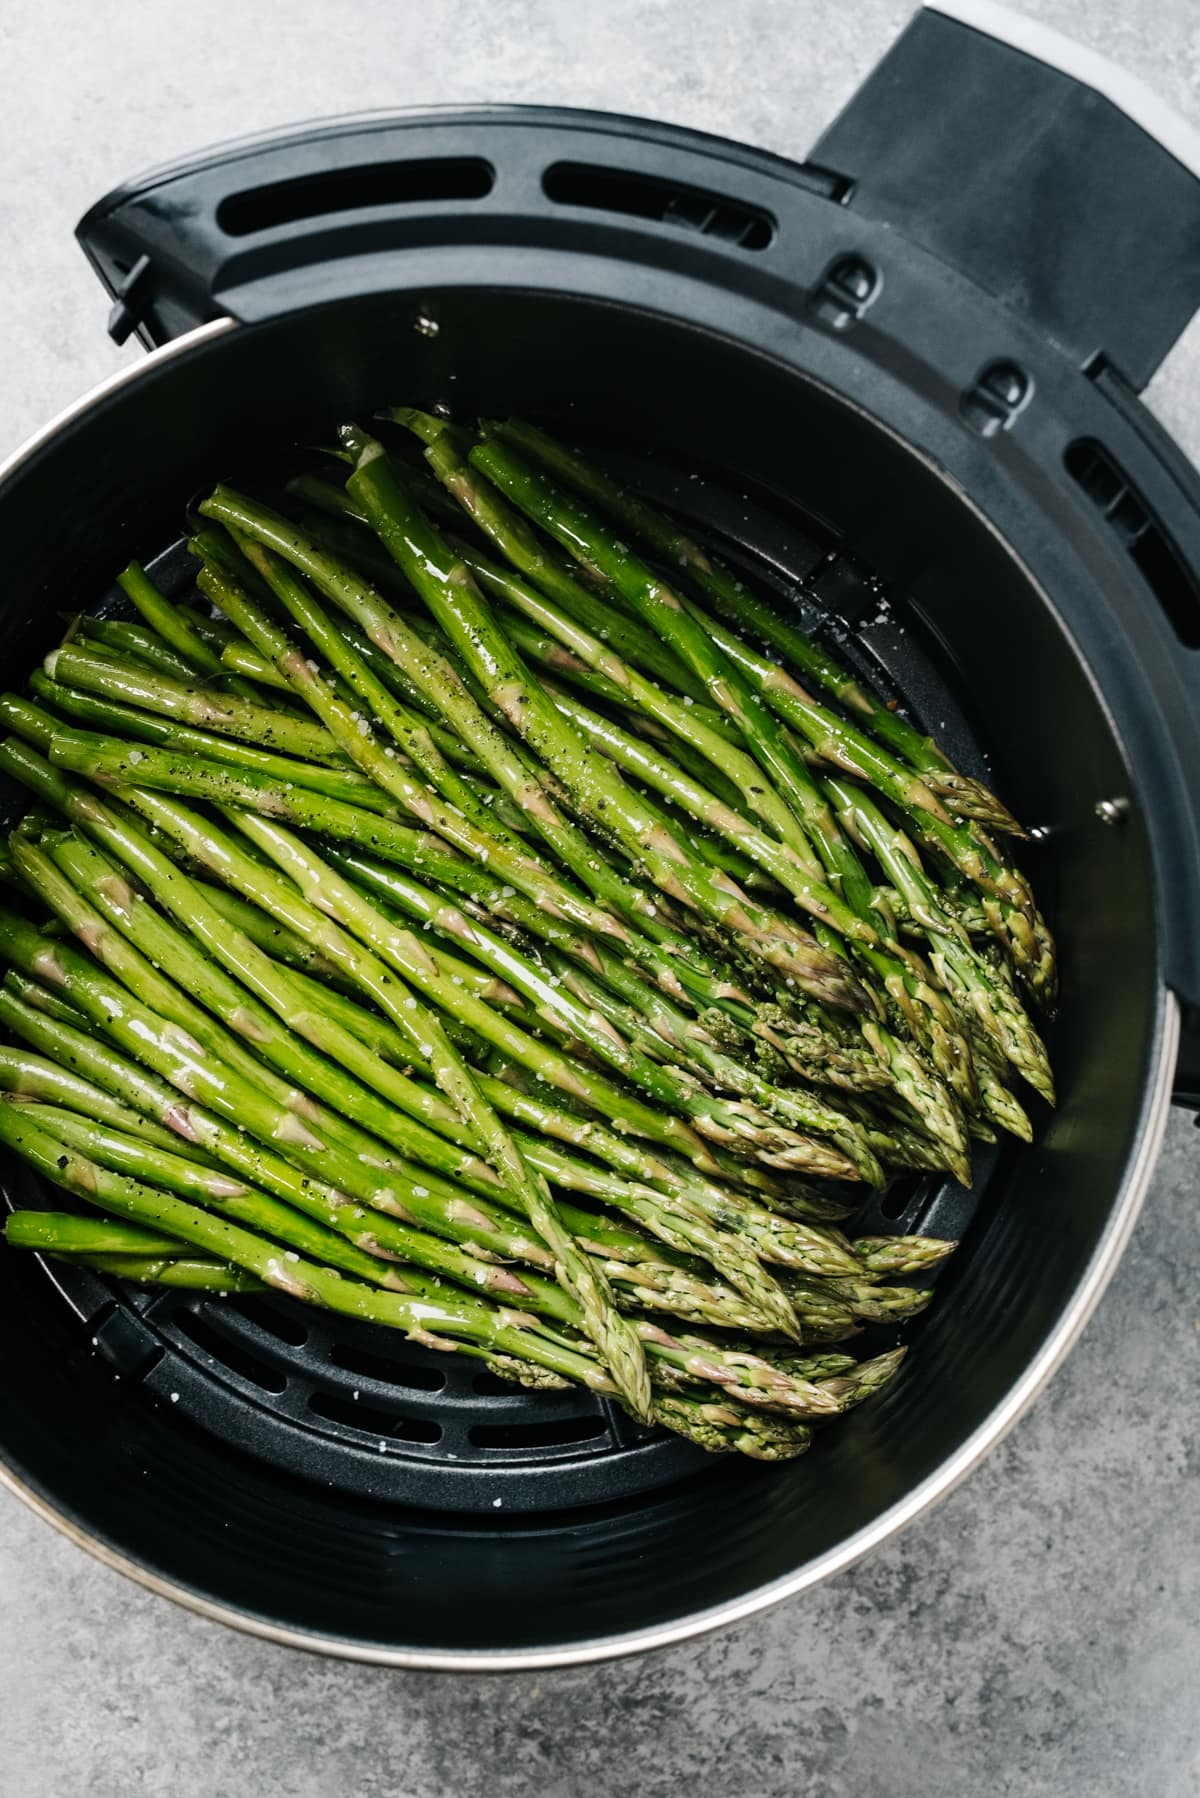 From overheard, asparagus spears tossed with olive oil, salt, and pepper in the basket of an air fryer.